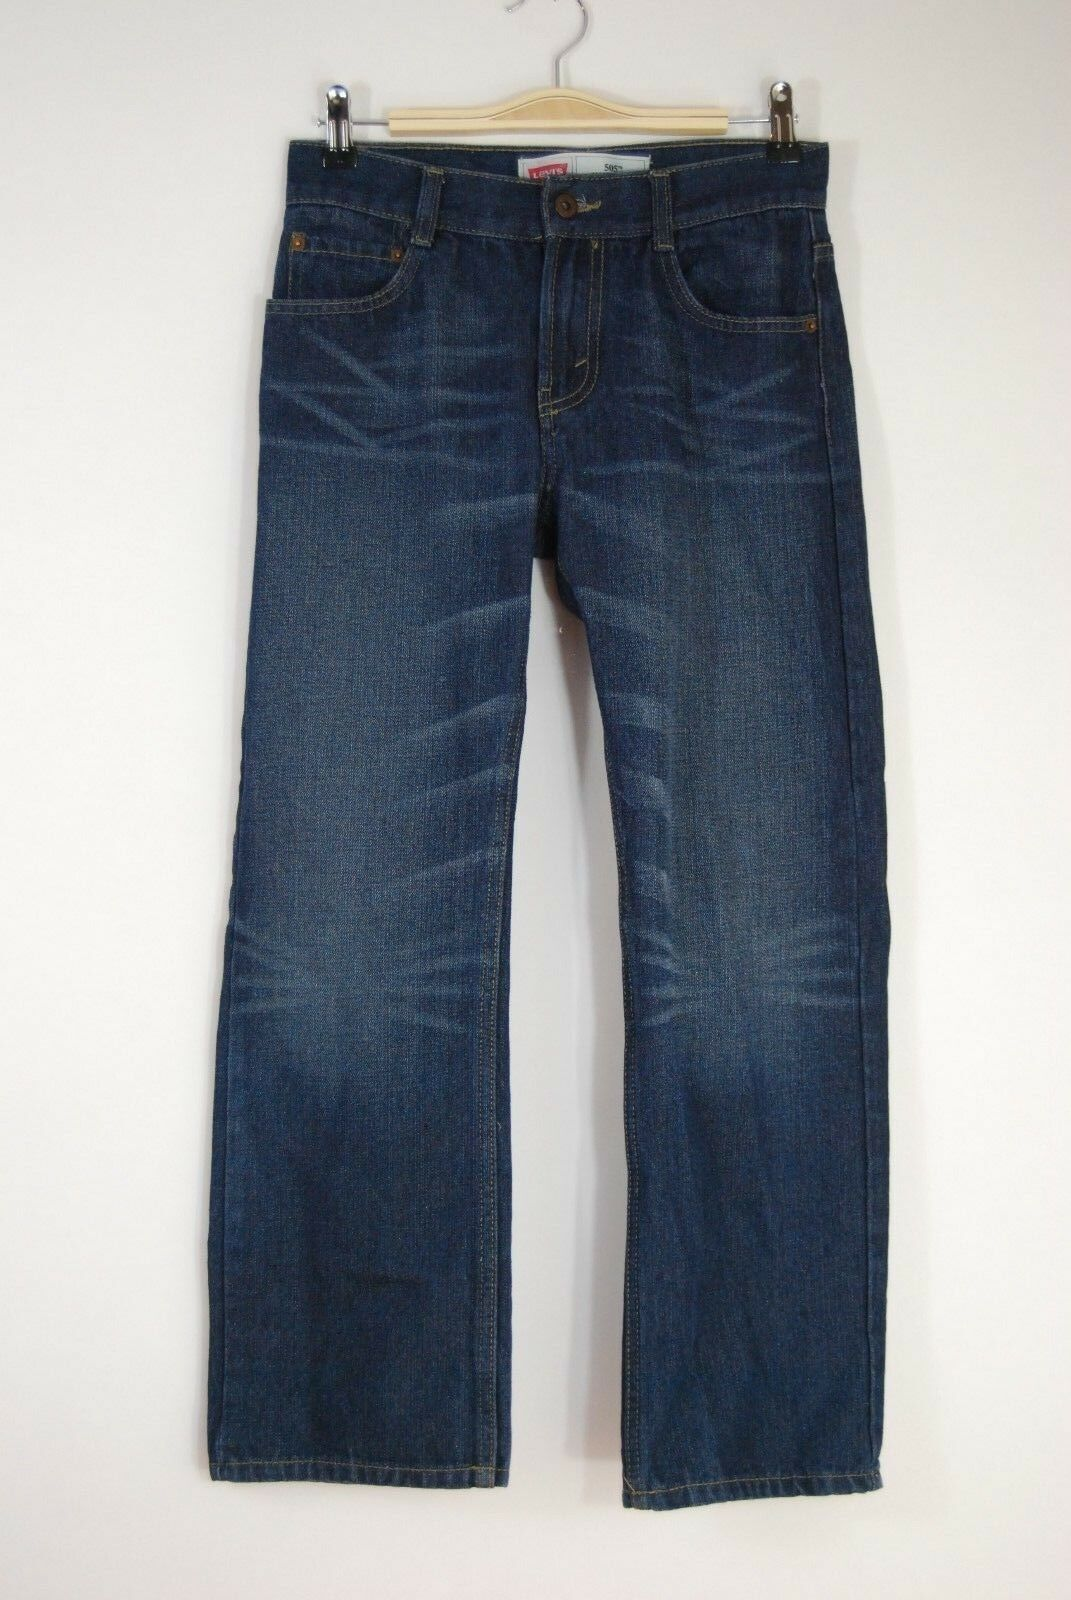 Primary image for Boy's Levi's 505 Straight - 14R (27x27) - Actual 27x26